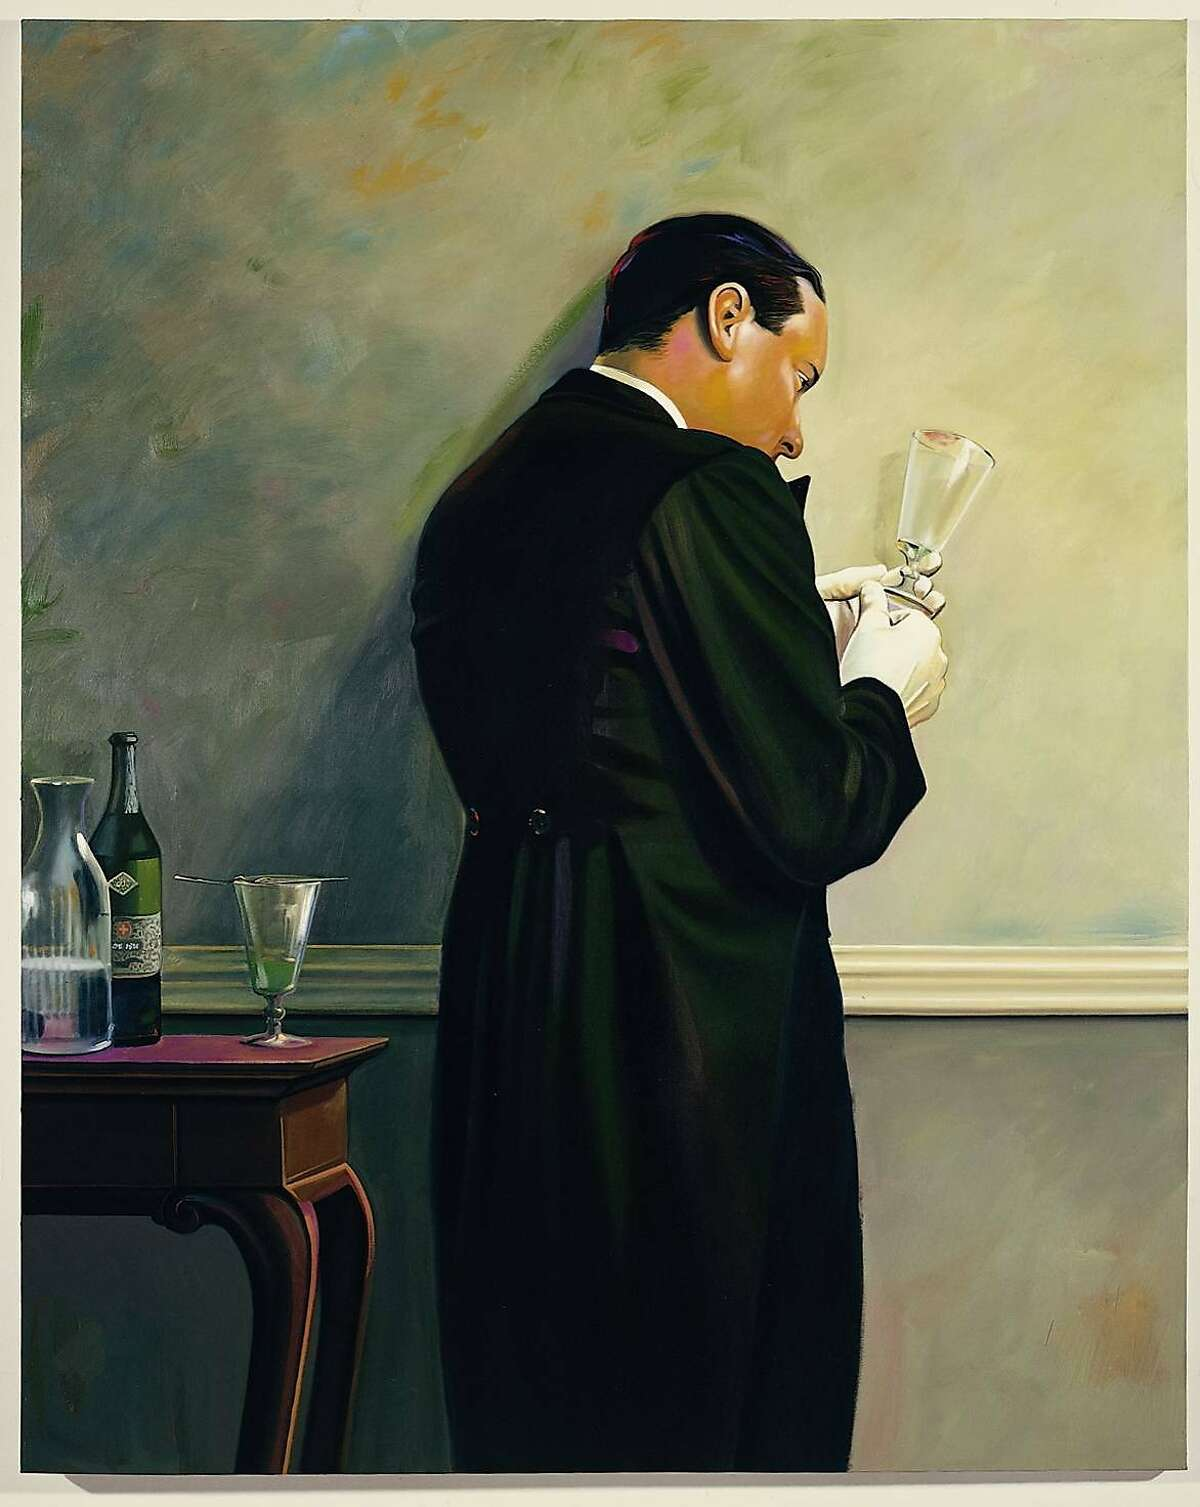 Mark STOCK The Butler's in Love - Absinthe, 1989 Oil on canvas 75 1/4 x 64 1/2 inches (MS 484)